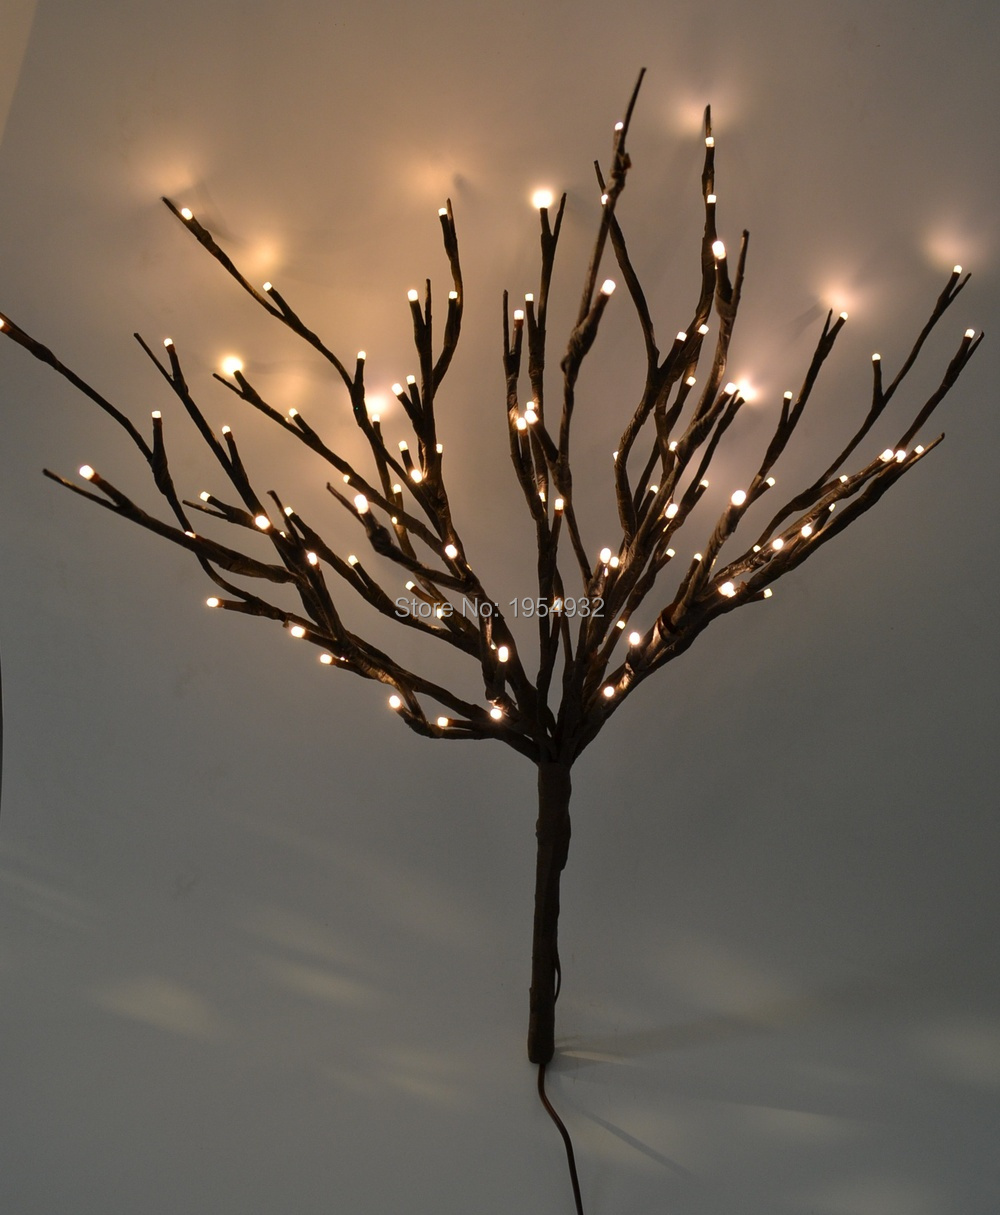 Led Lighted Twig Branches 100 Led Pre Light Twig Branch Artificial Tree Willow Branches Lamp For Home Holiday Party Decoration Christmas Branches Decorative Twigswedding Branches Aliexpress